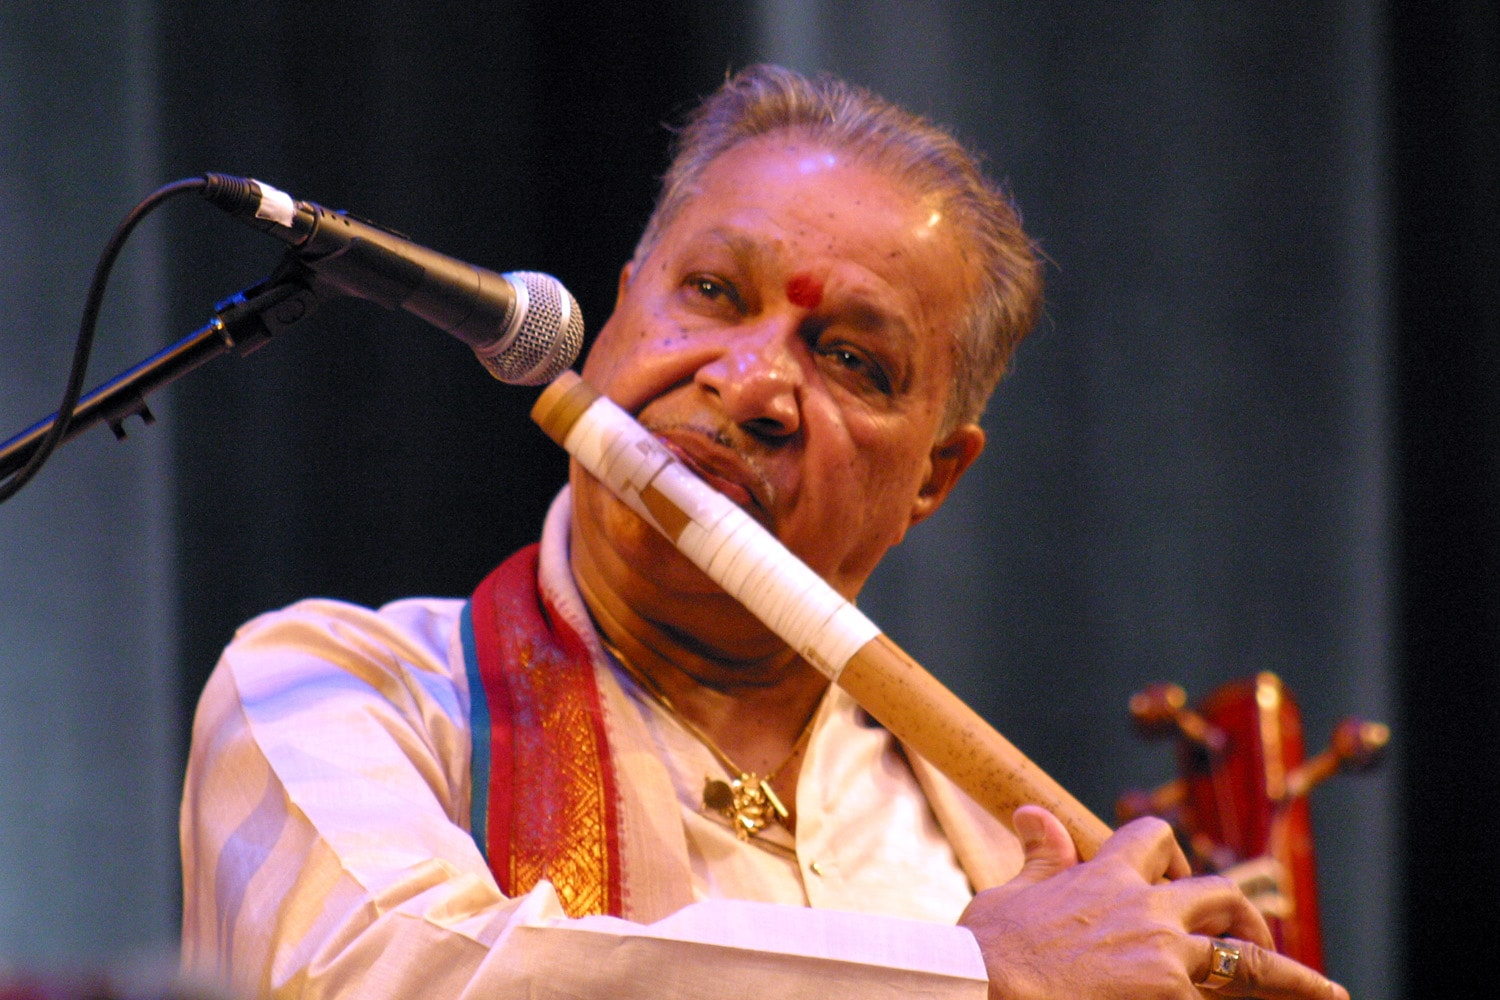 Hariprasad Chourasia to get lifetime achievement award for music